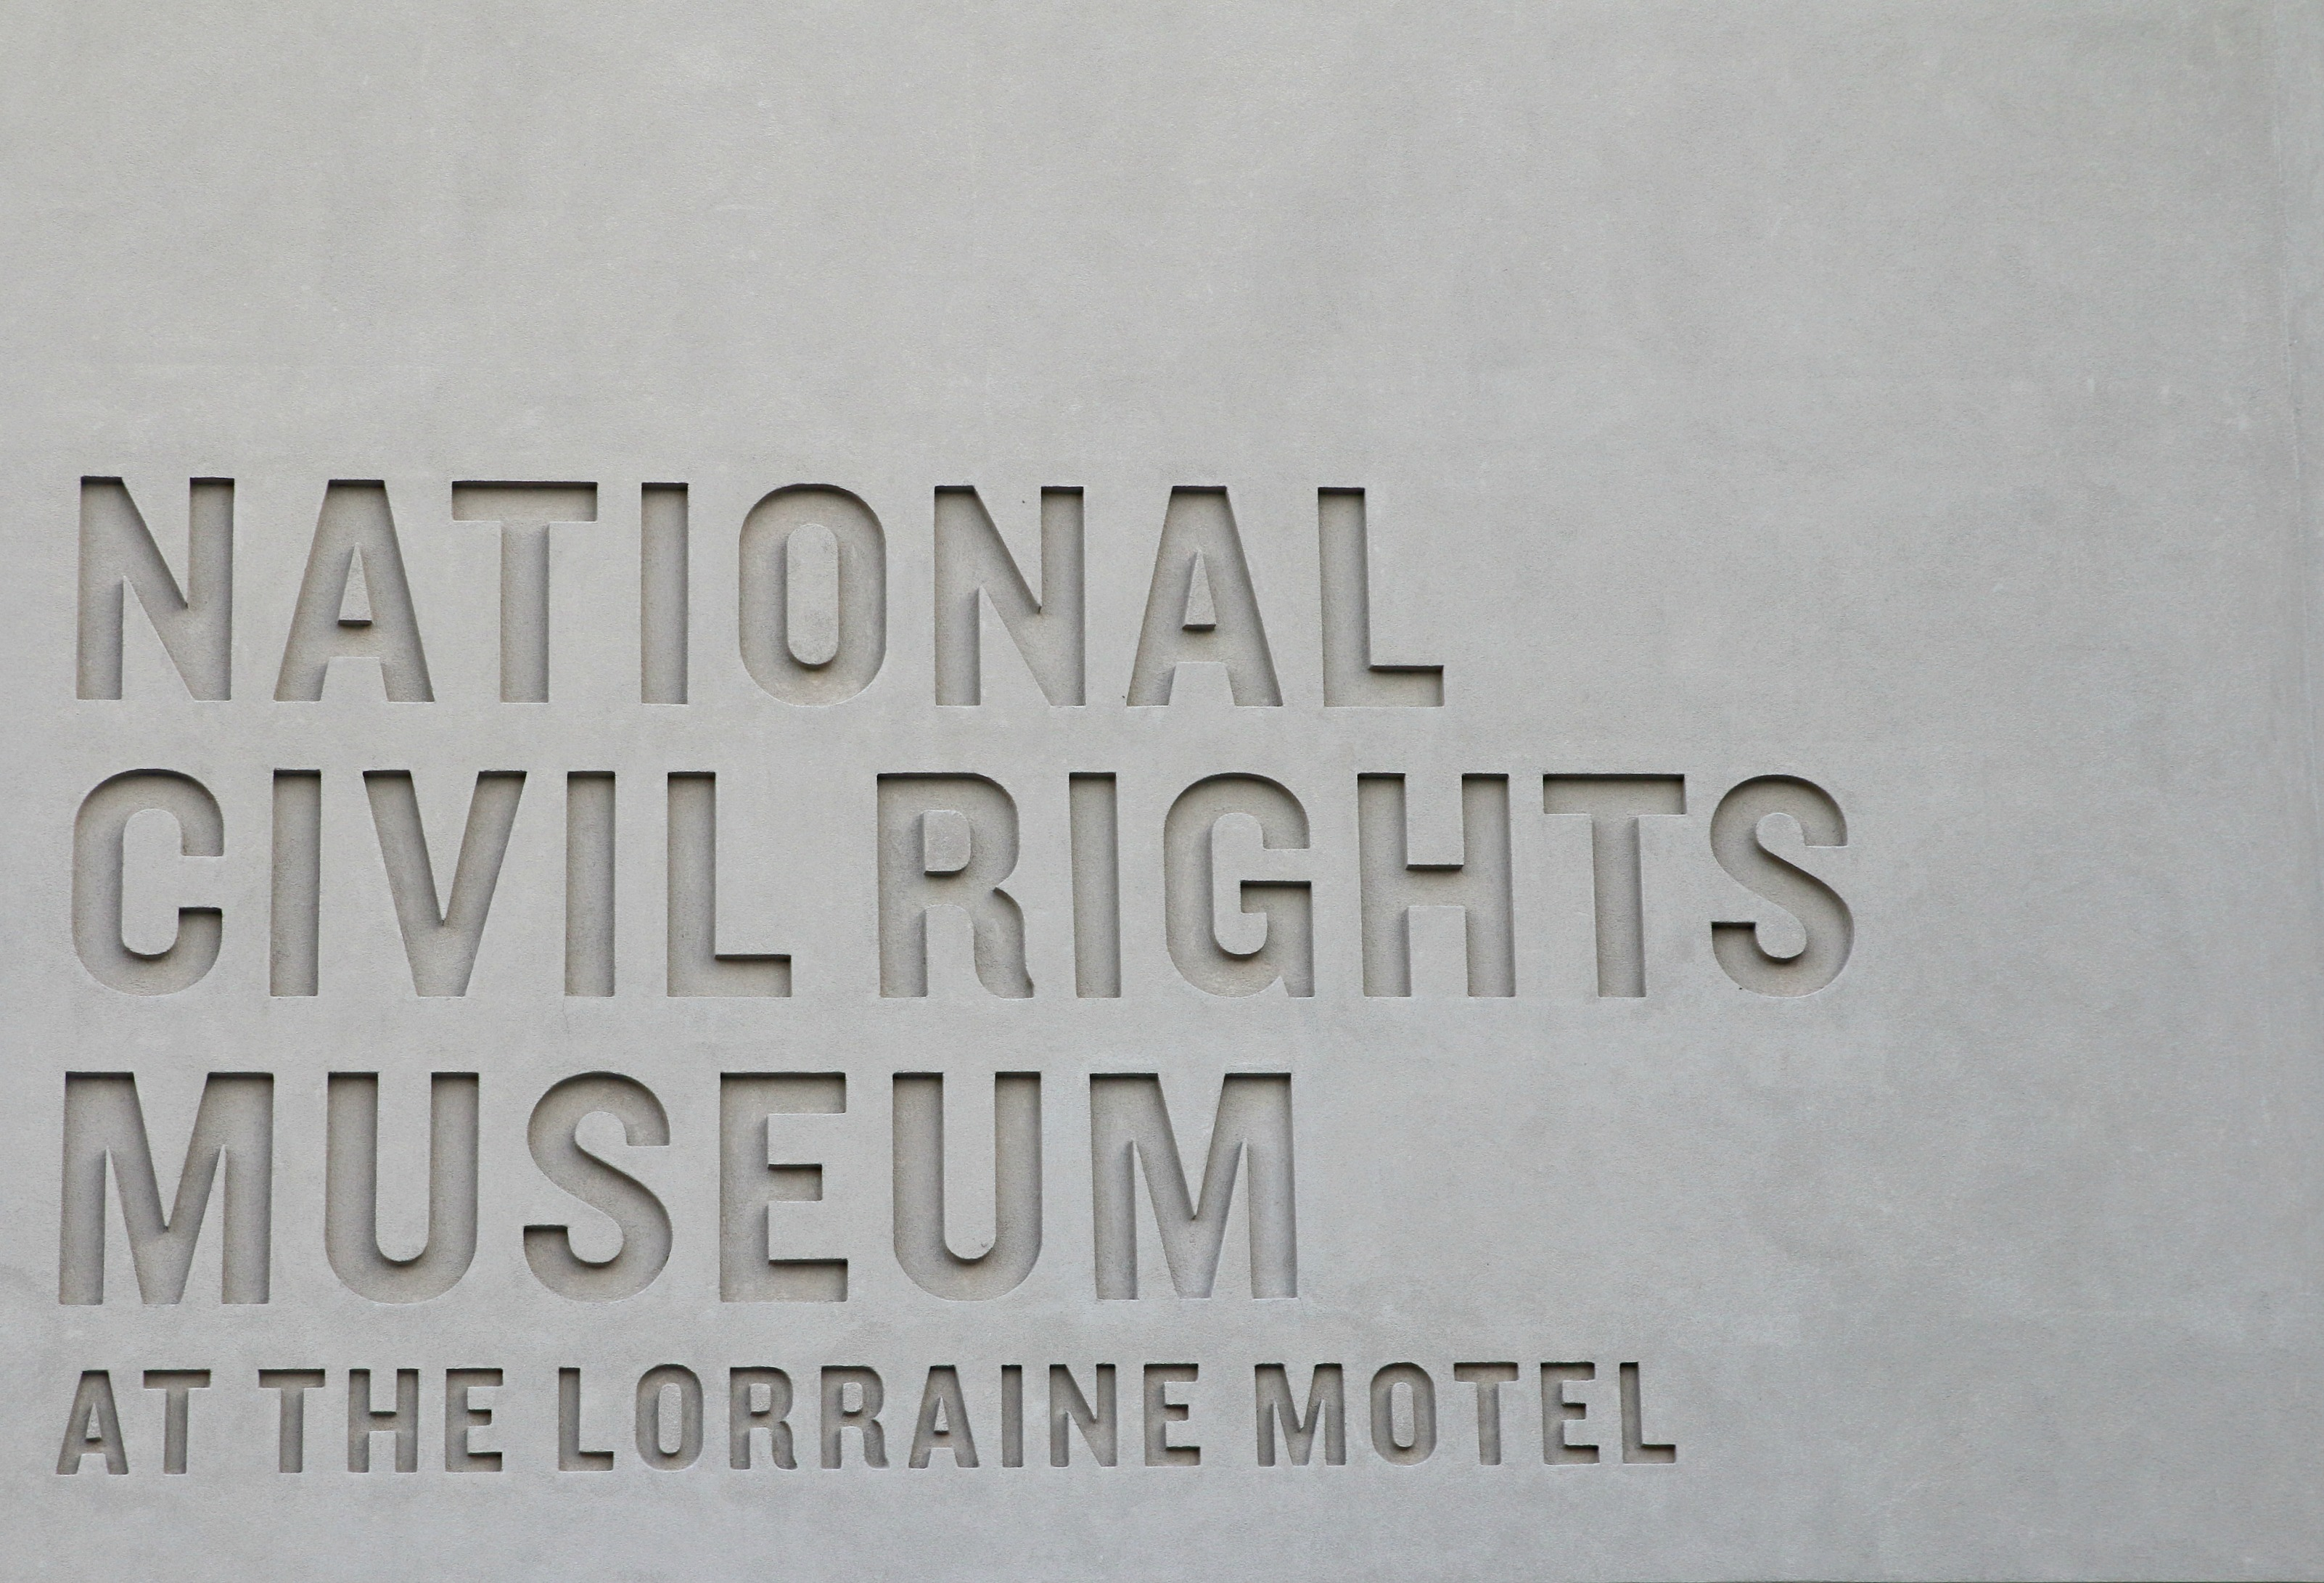 National civil rights